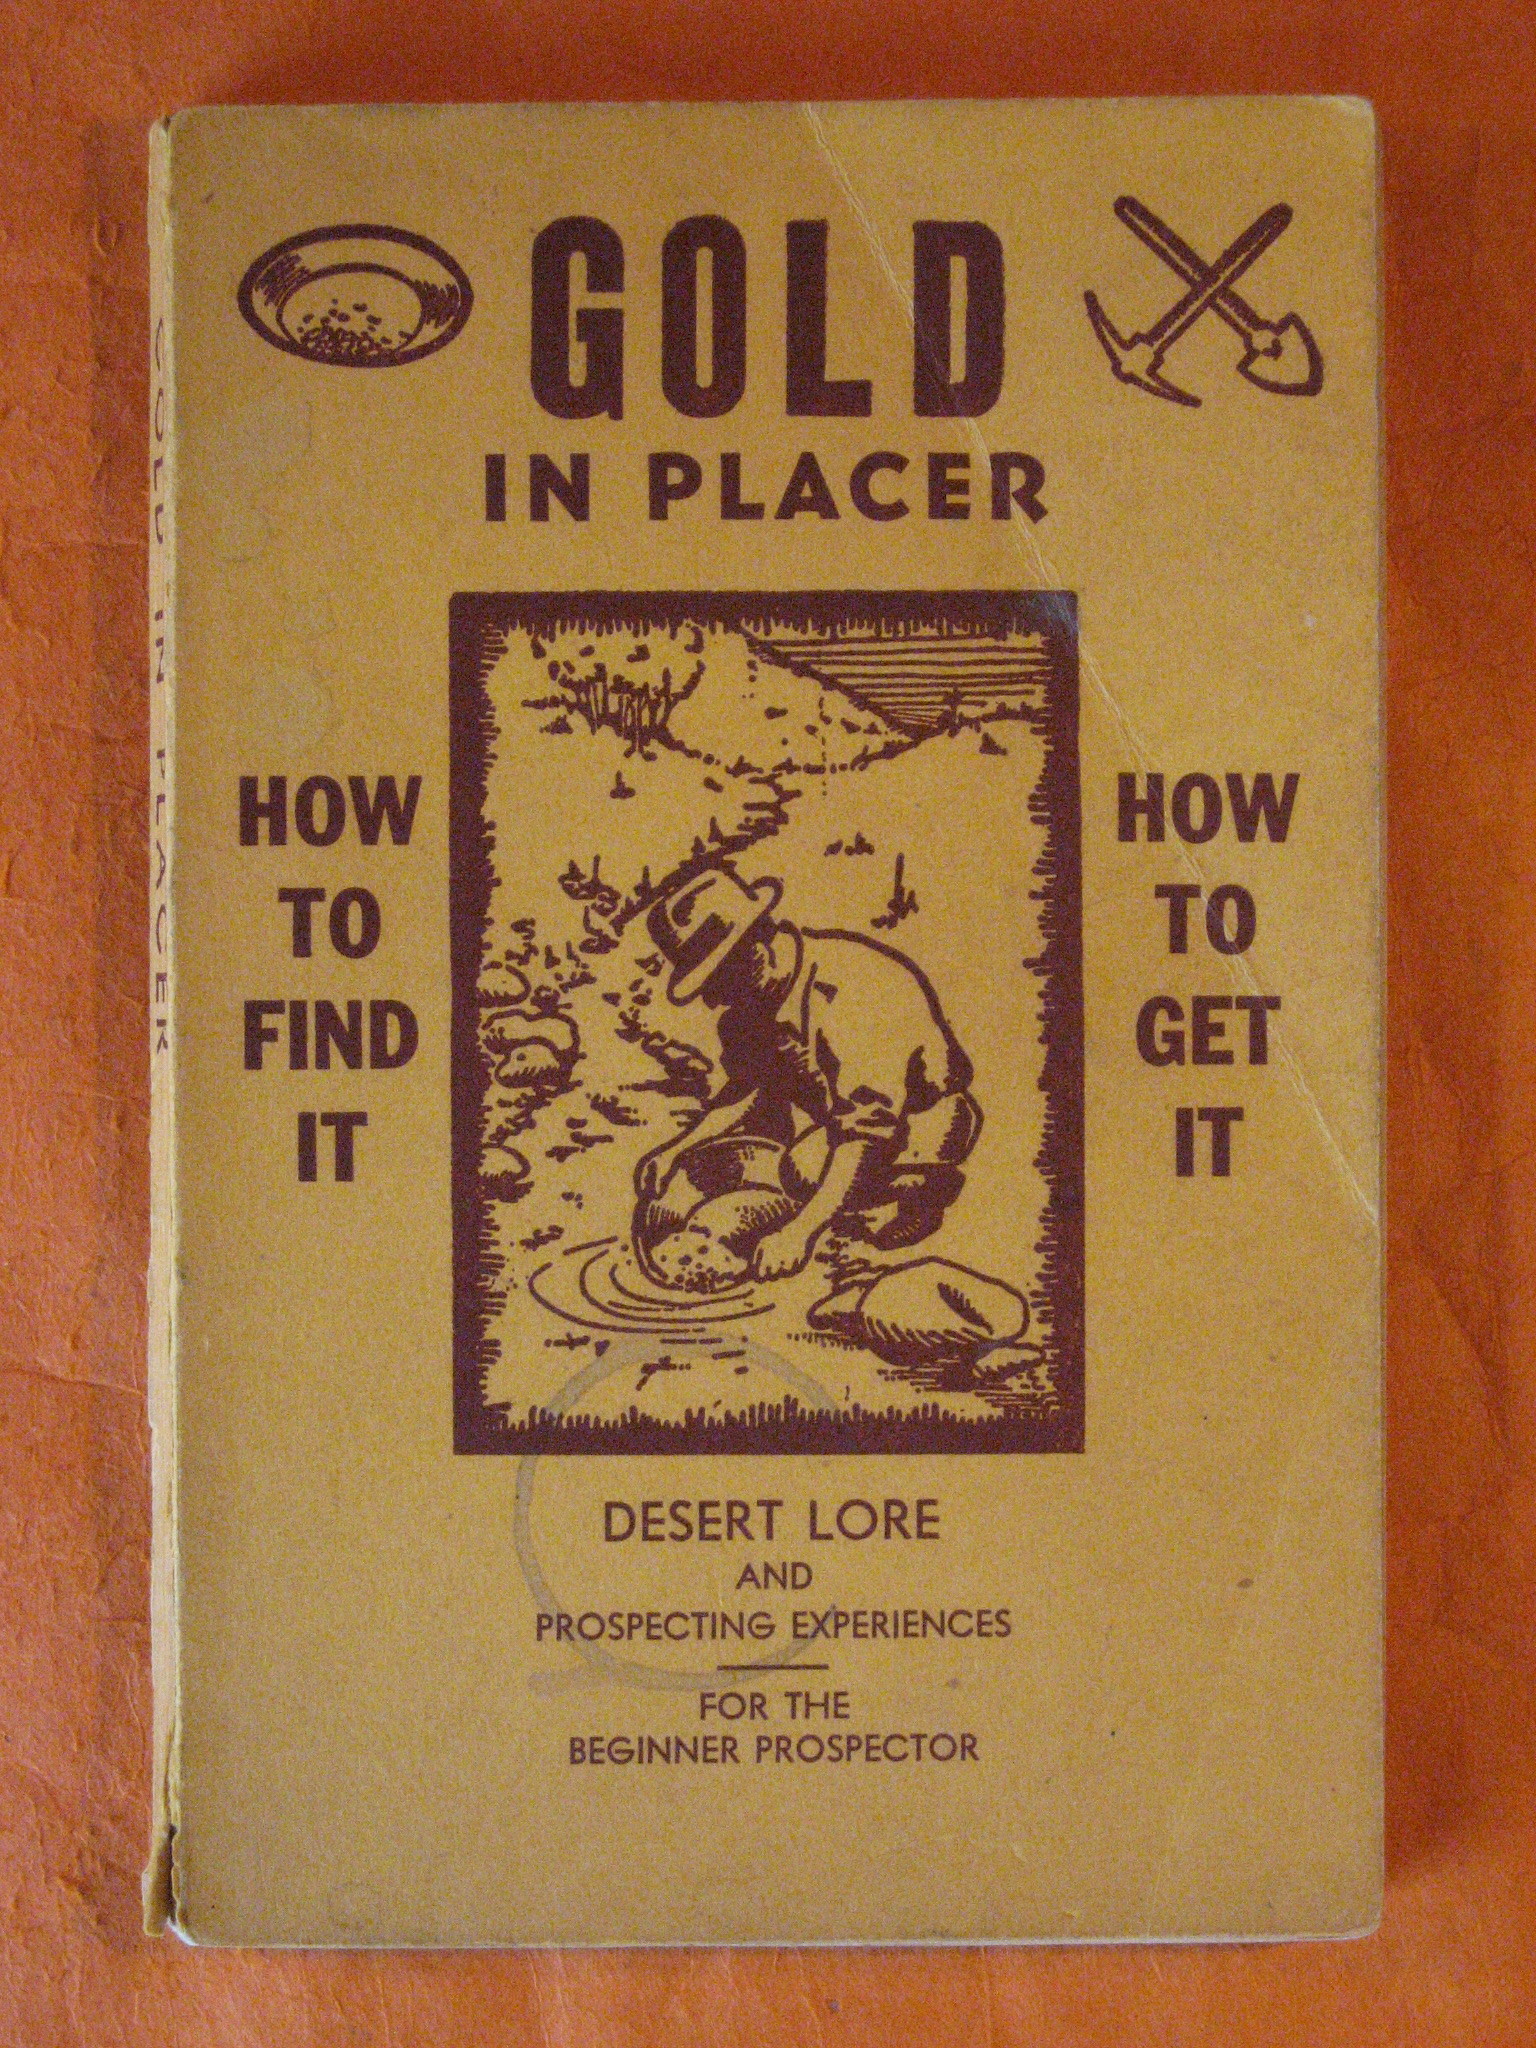 Gold in Placer:  How to Find It - How to Get It, Desert Lore and Prospecting Experiences for the Beginner Prospector, Douglas, Jack